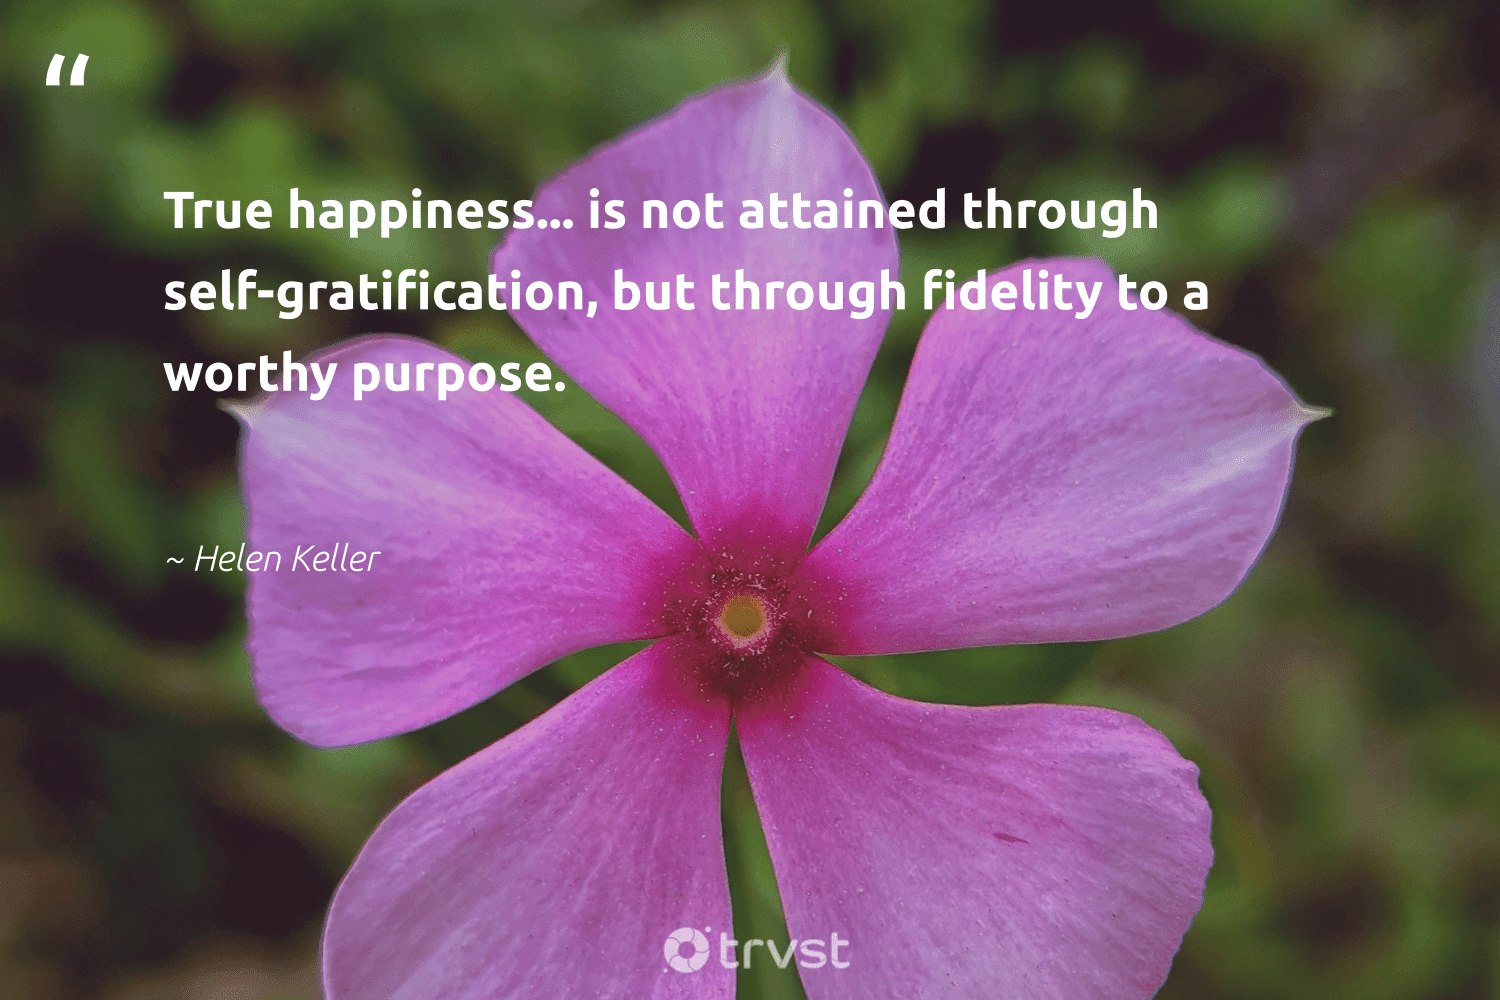 """""""True happiness... is not attained through self-gratification, but through fidelity to a worthy purpose.""""  - Helen Keller #trvst #quotes #purpose #happiness #findingpupose #changemakers #togetherwecan #socialimpact #findpurpose #mindset #health #planetearthfirst"""